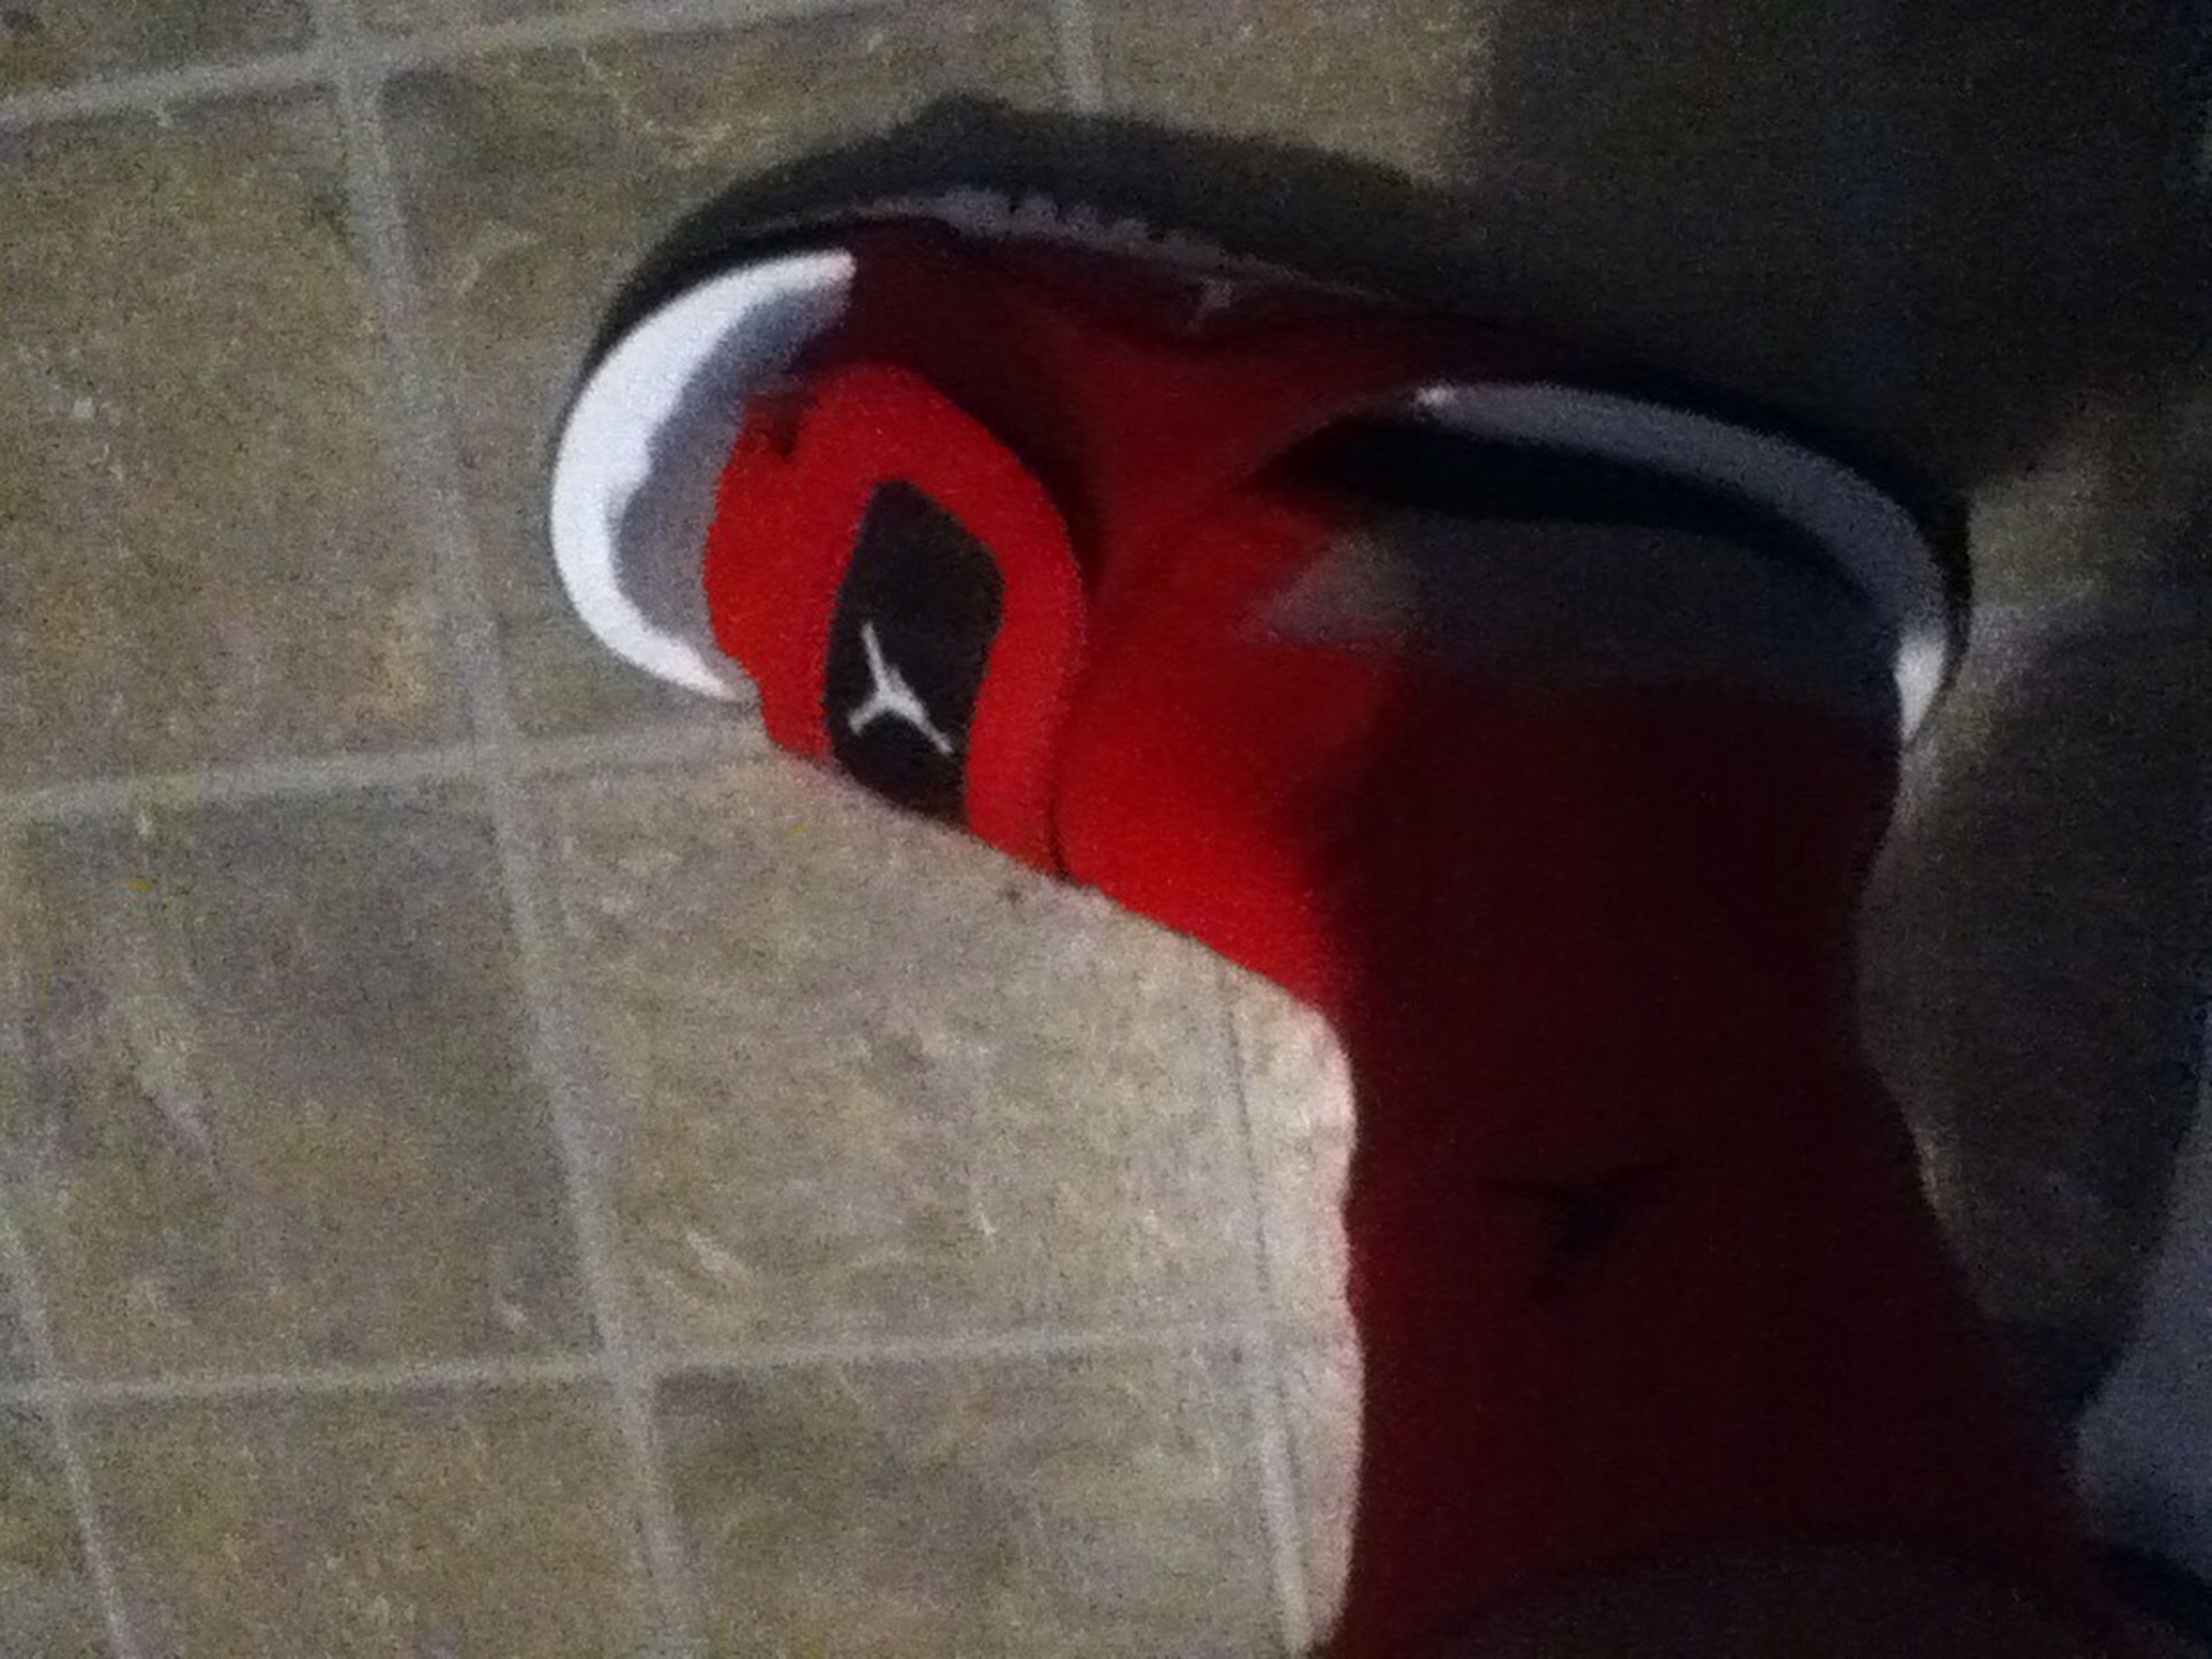 indoors, low section, red, person, lifestyles, shoe, close-up, part of, leisure activity, men, personal perspective, high angle view, unrecognizable person, human foot, footwear, standing